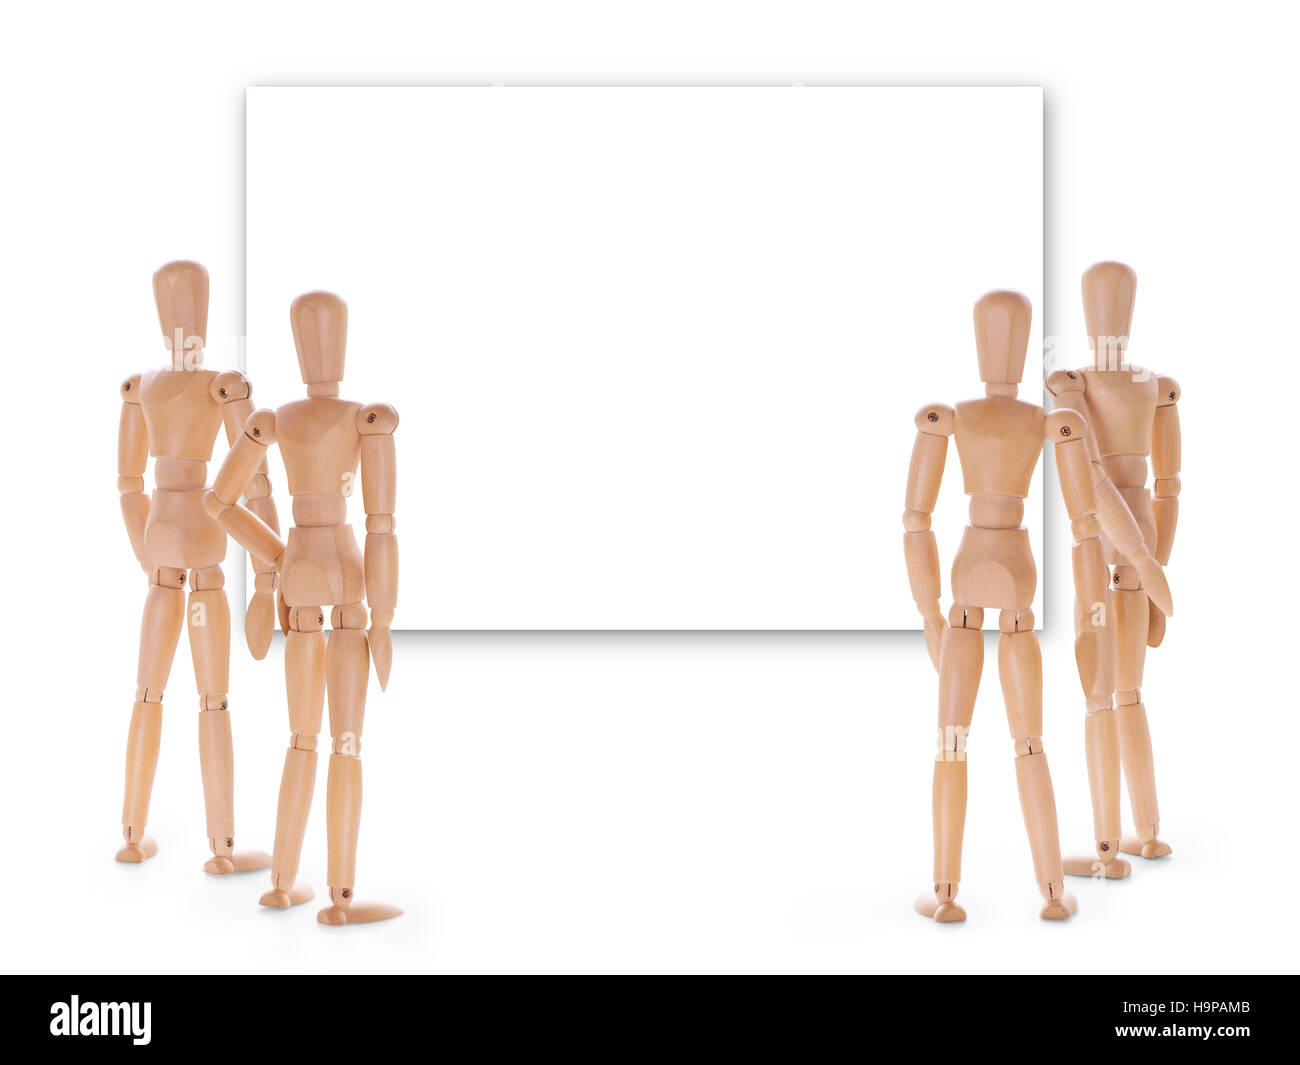 Group of wooden people looking at empty screen. Exposition, presentation, premiere, announcement and audience interest - Stock Image